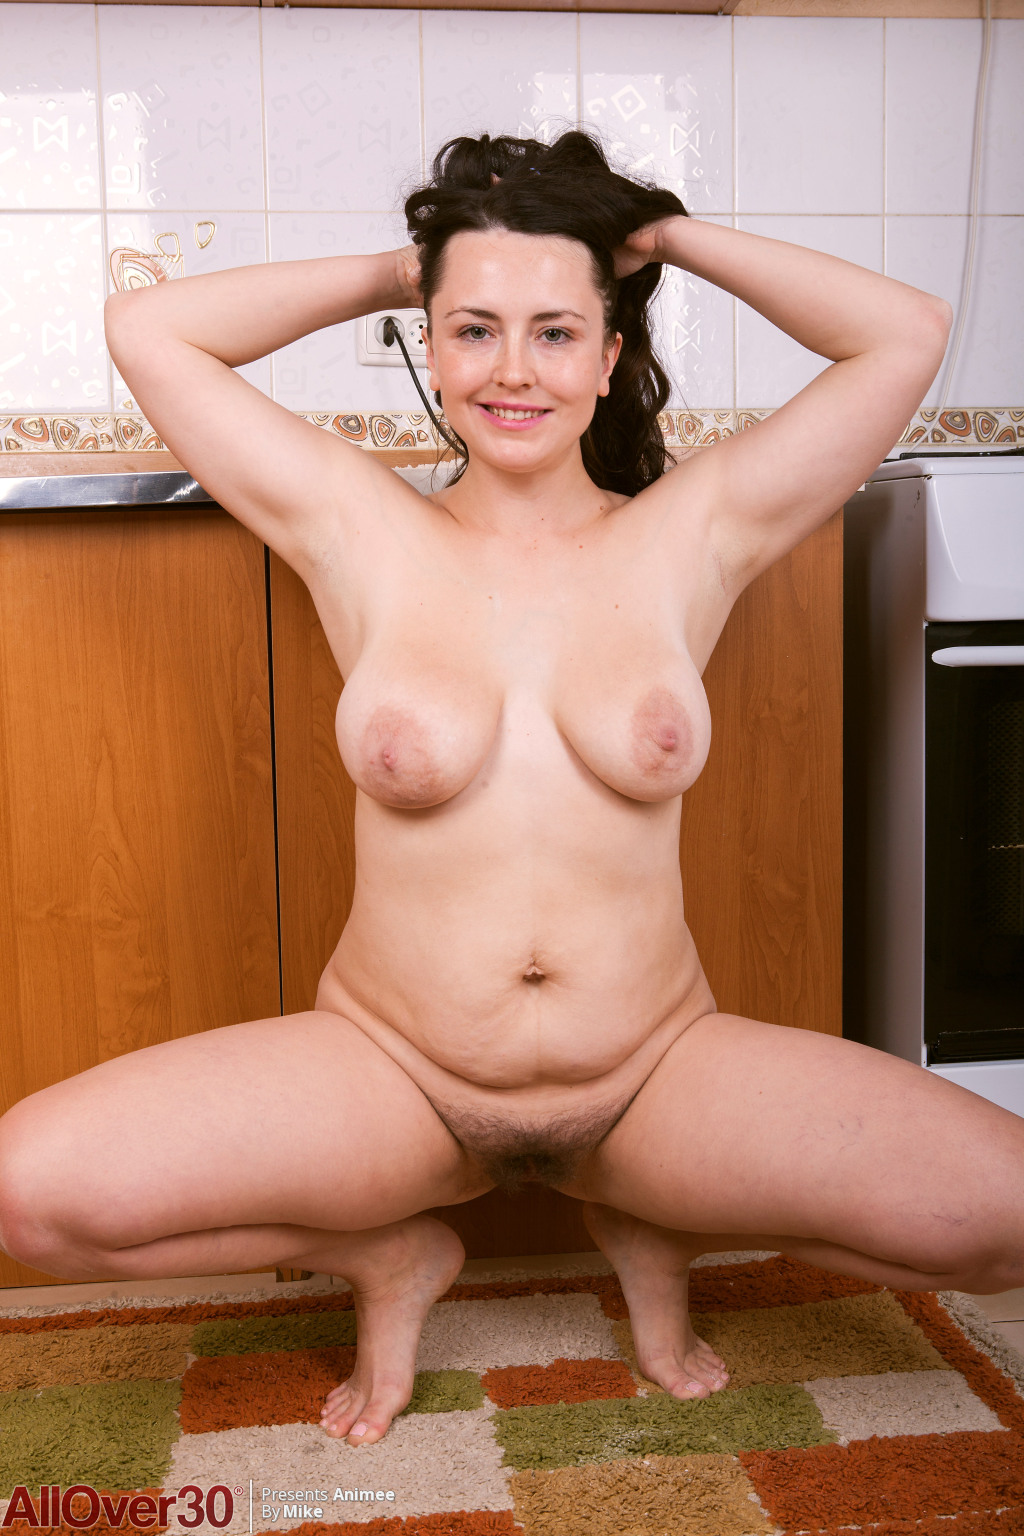 animee-hot-chef-11